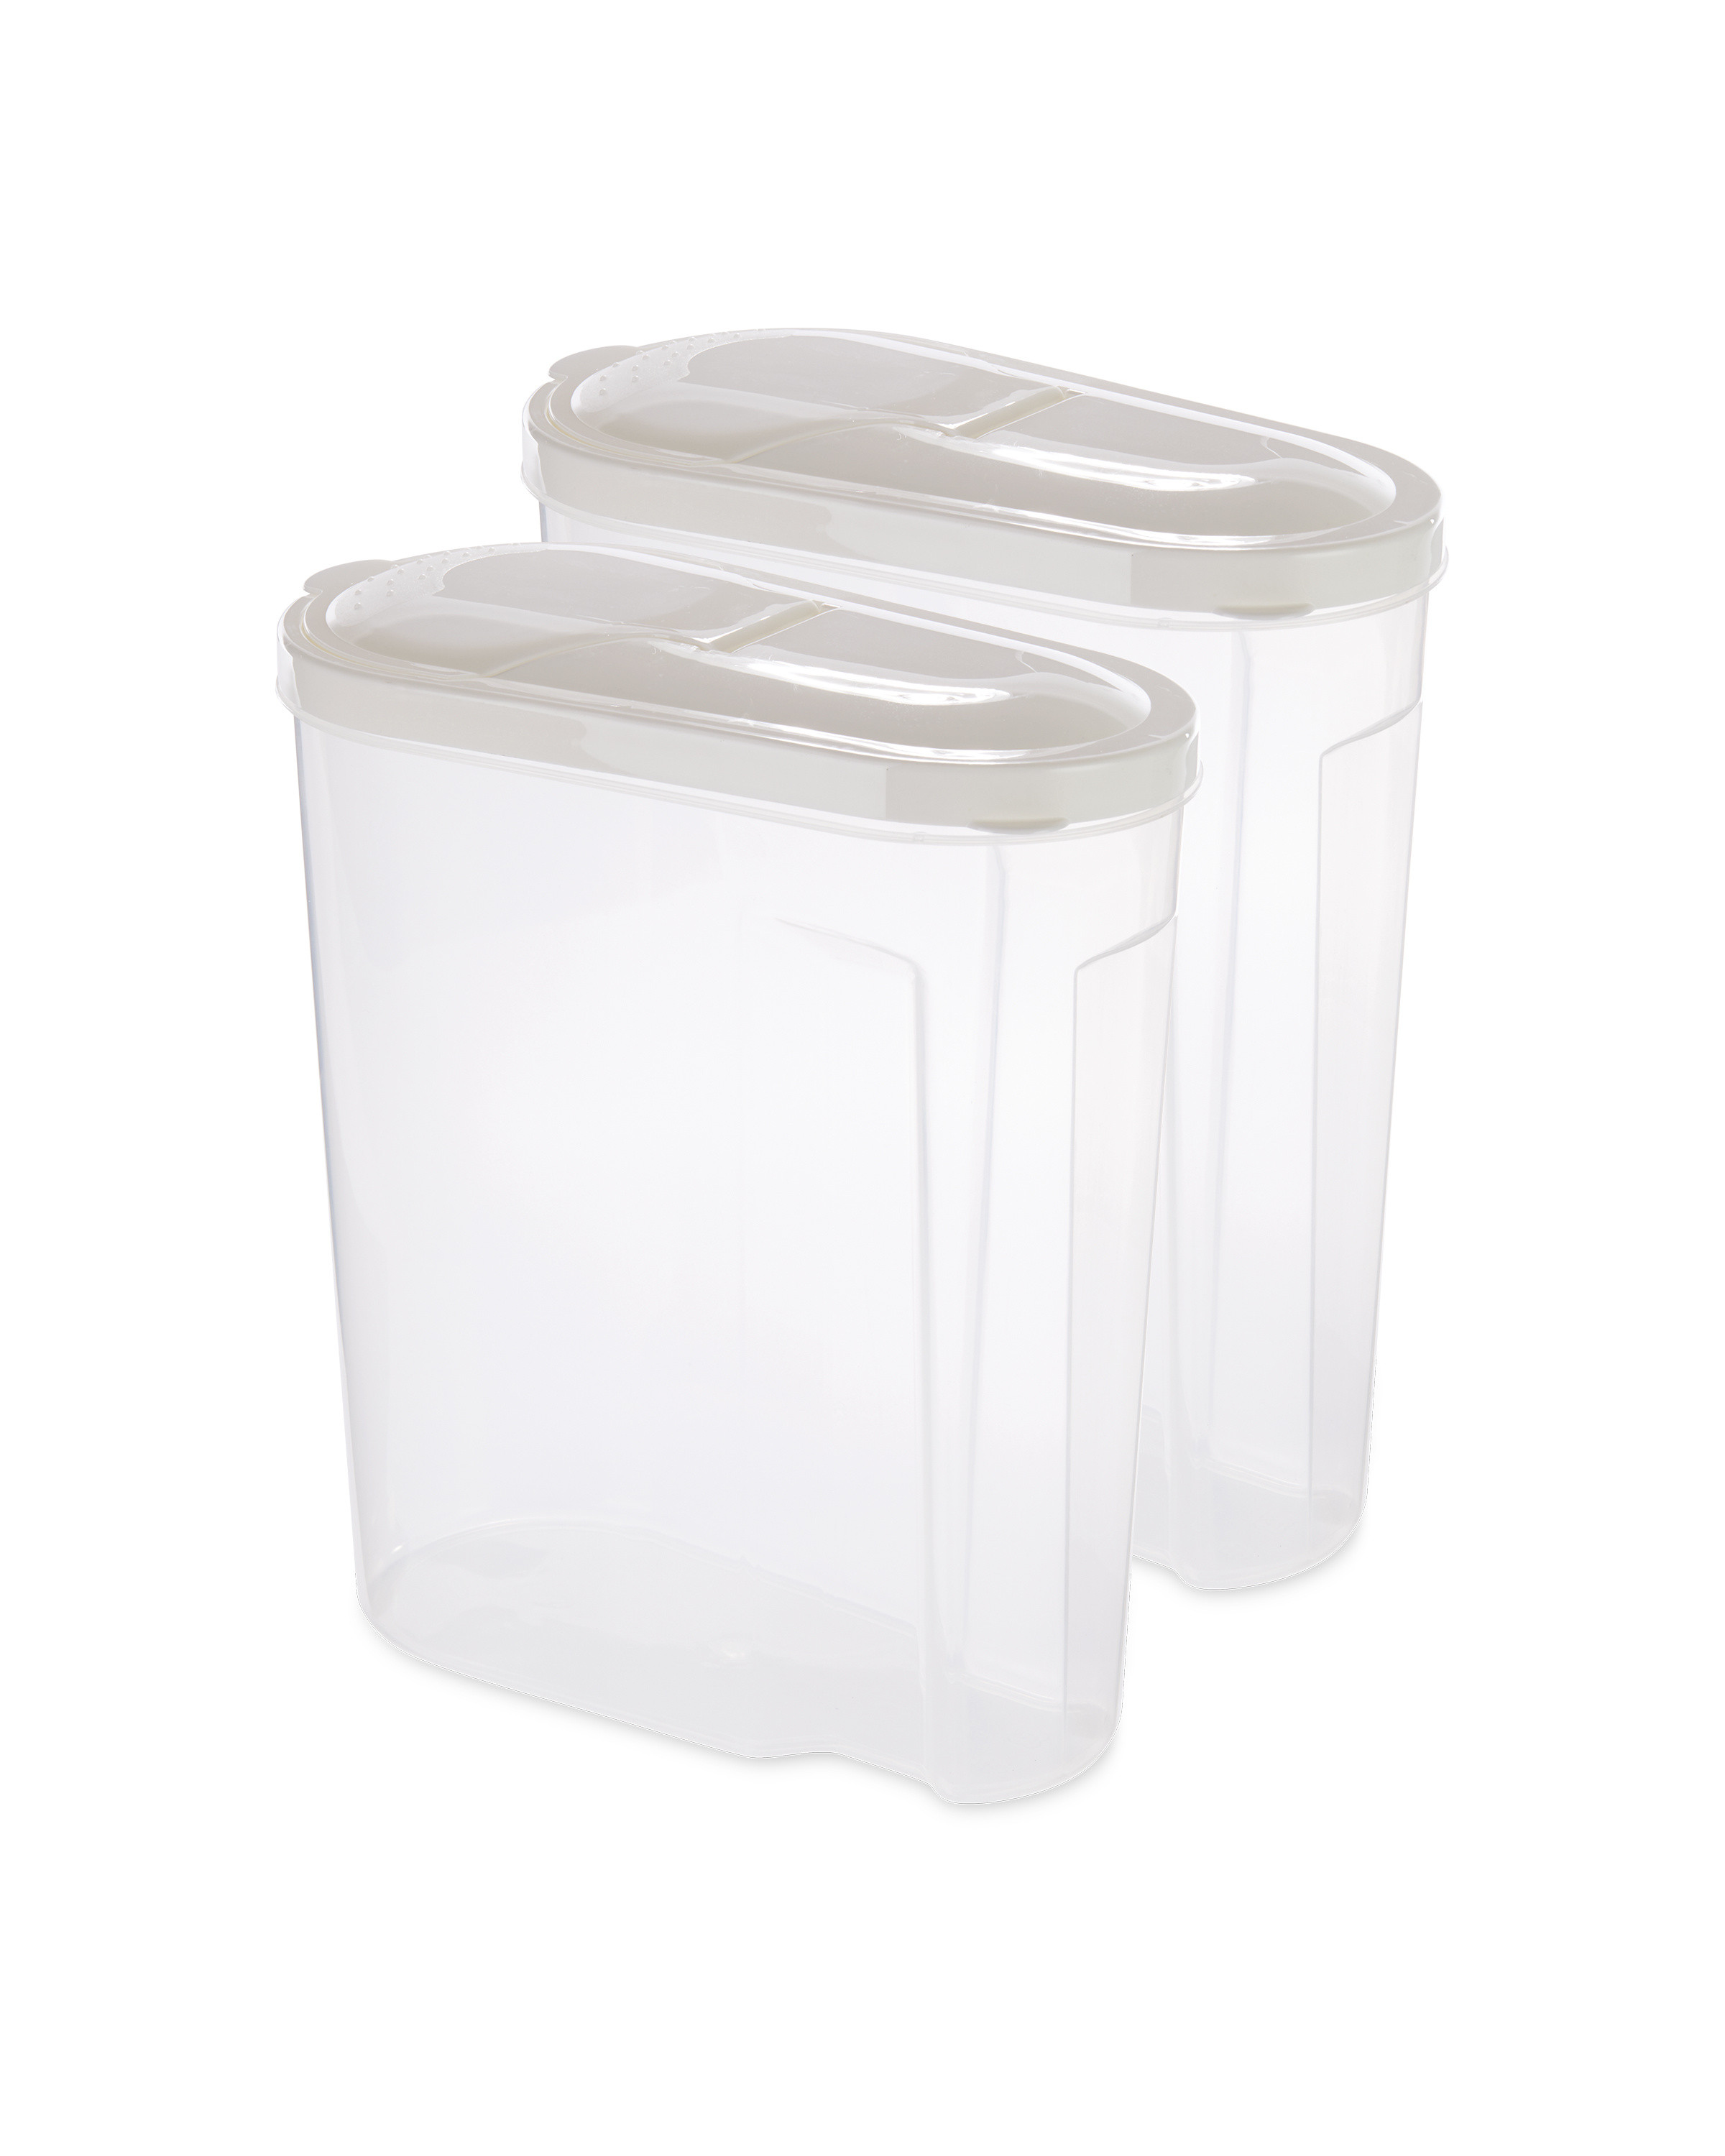 White Lid Cereal Containers 2 Pack